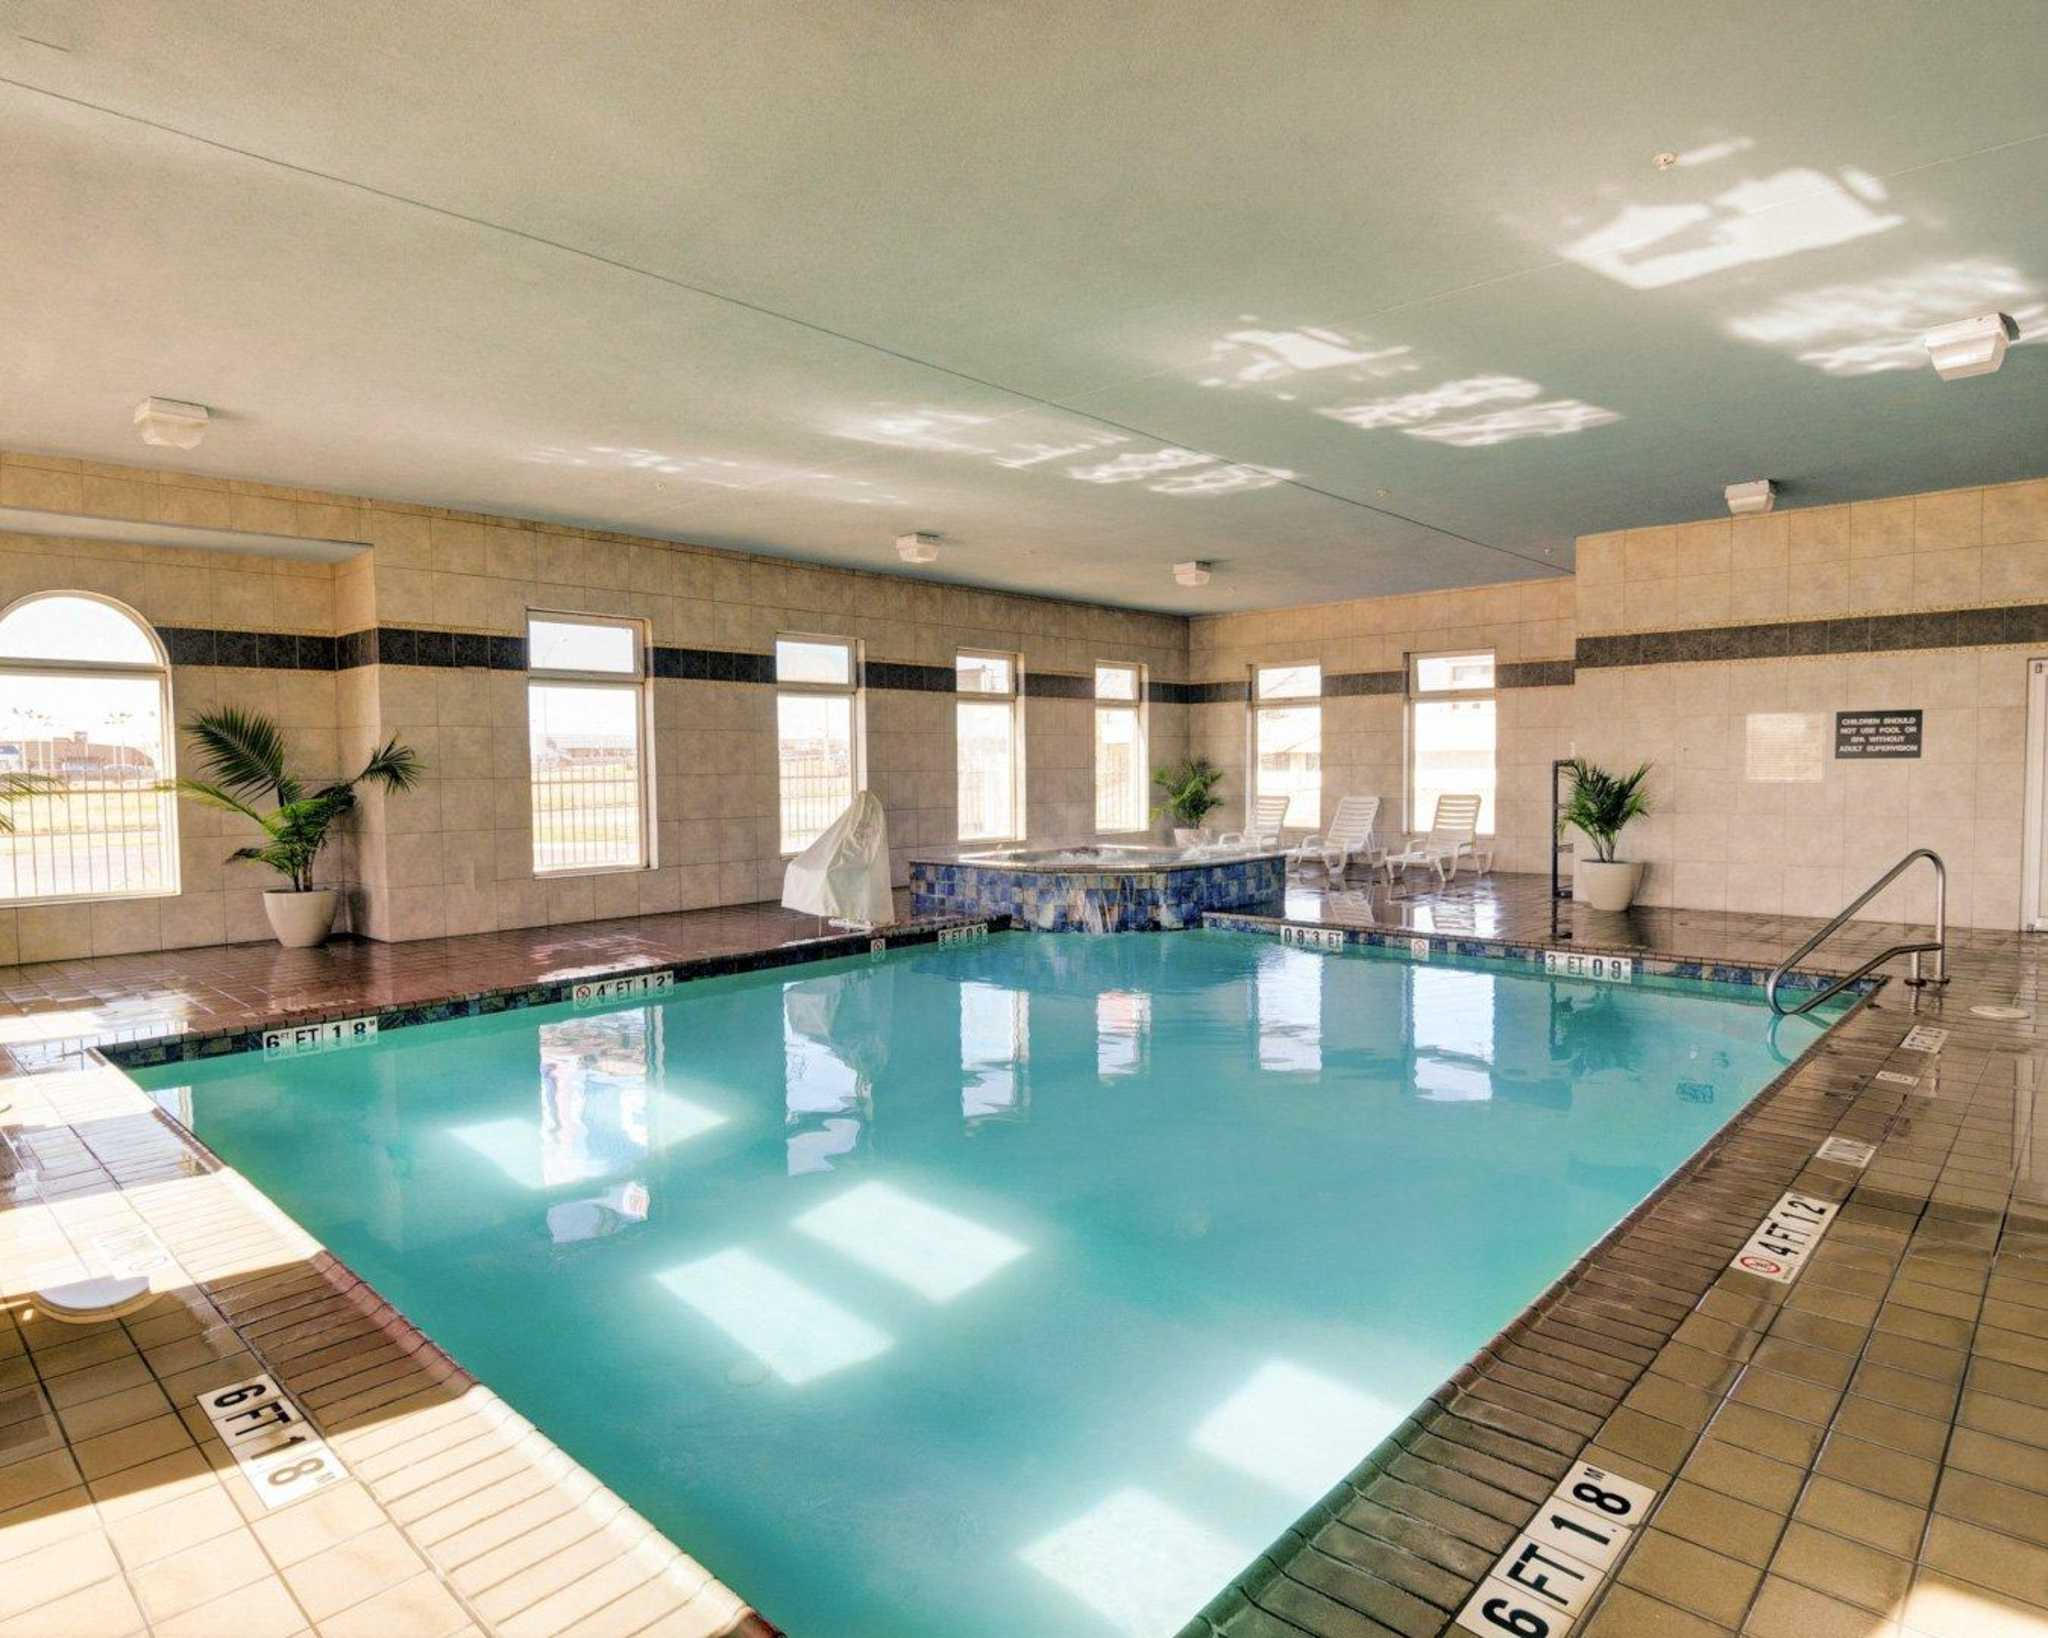 Comfort inn suites in amarillo tx 79102 for Amarillo parks and recreation swimming pools